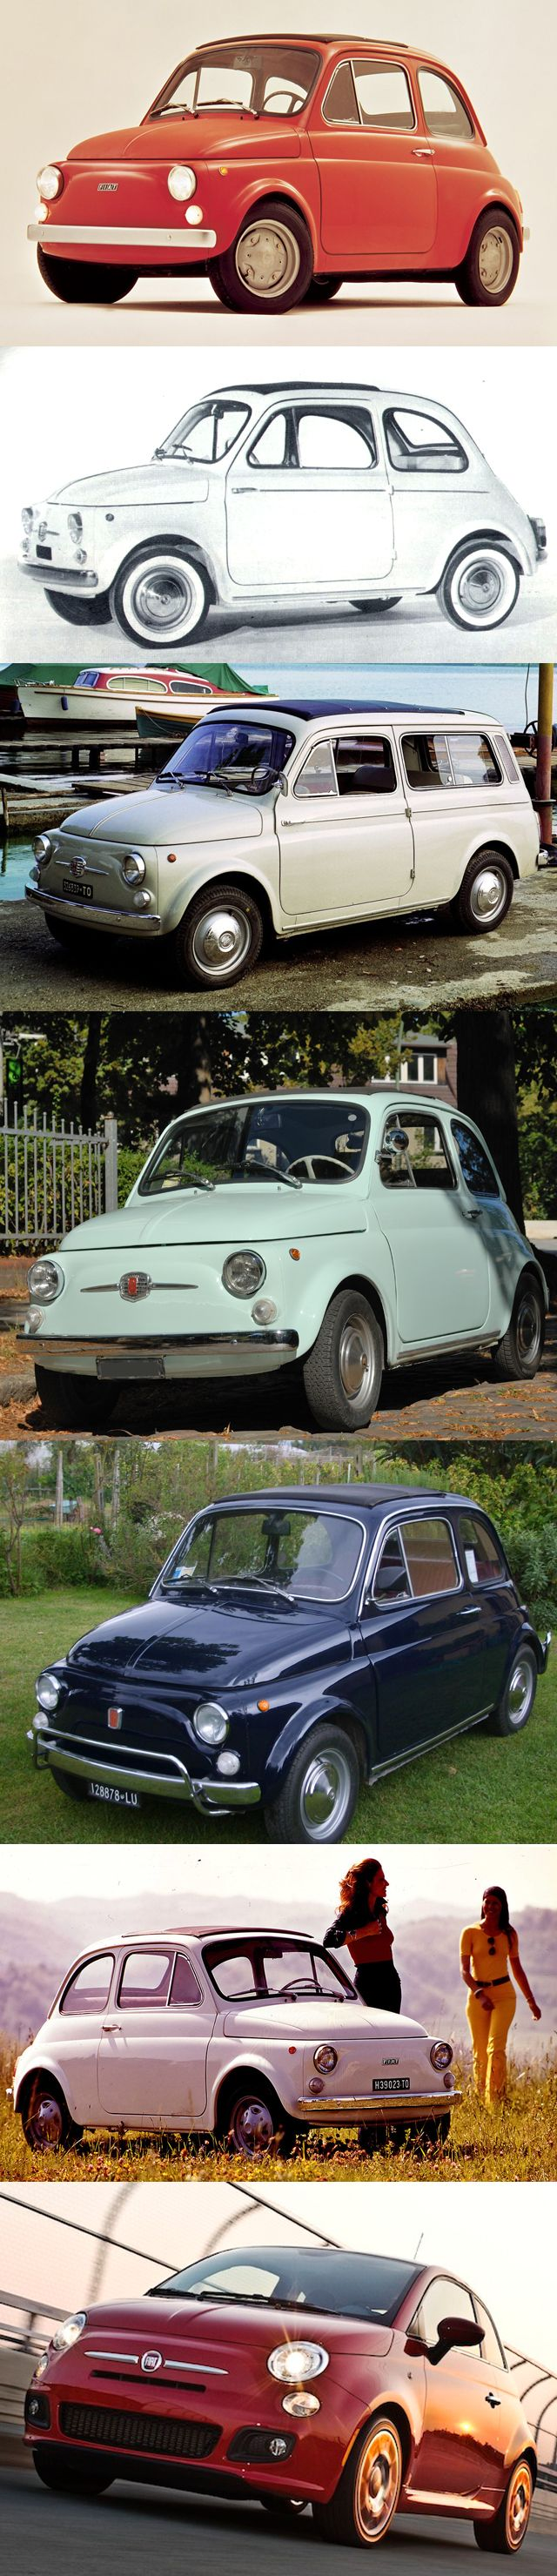 Fiat 500 Evolution From 1957-2011